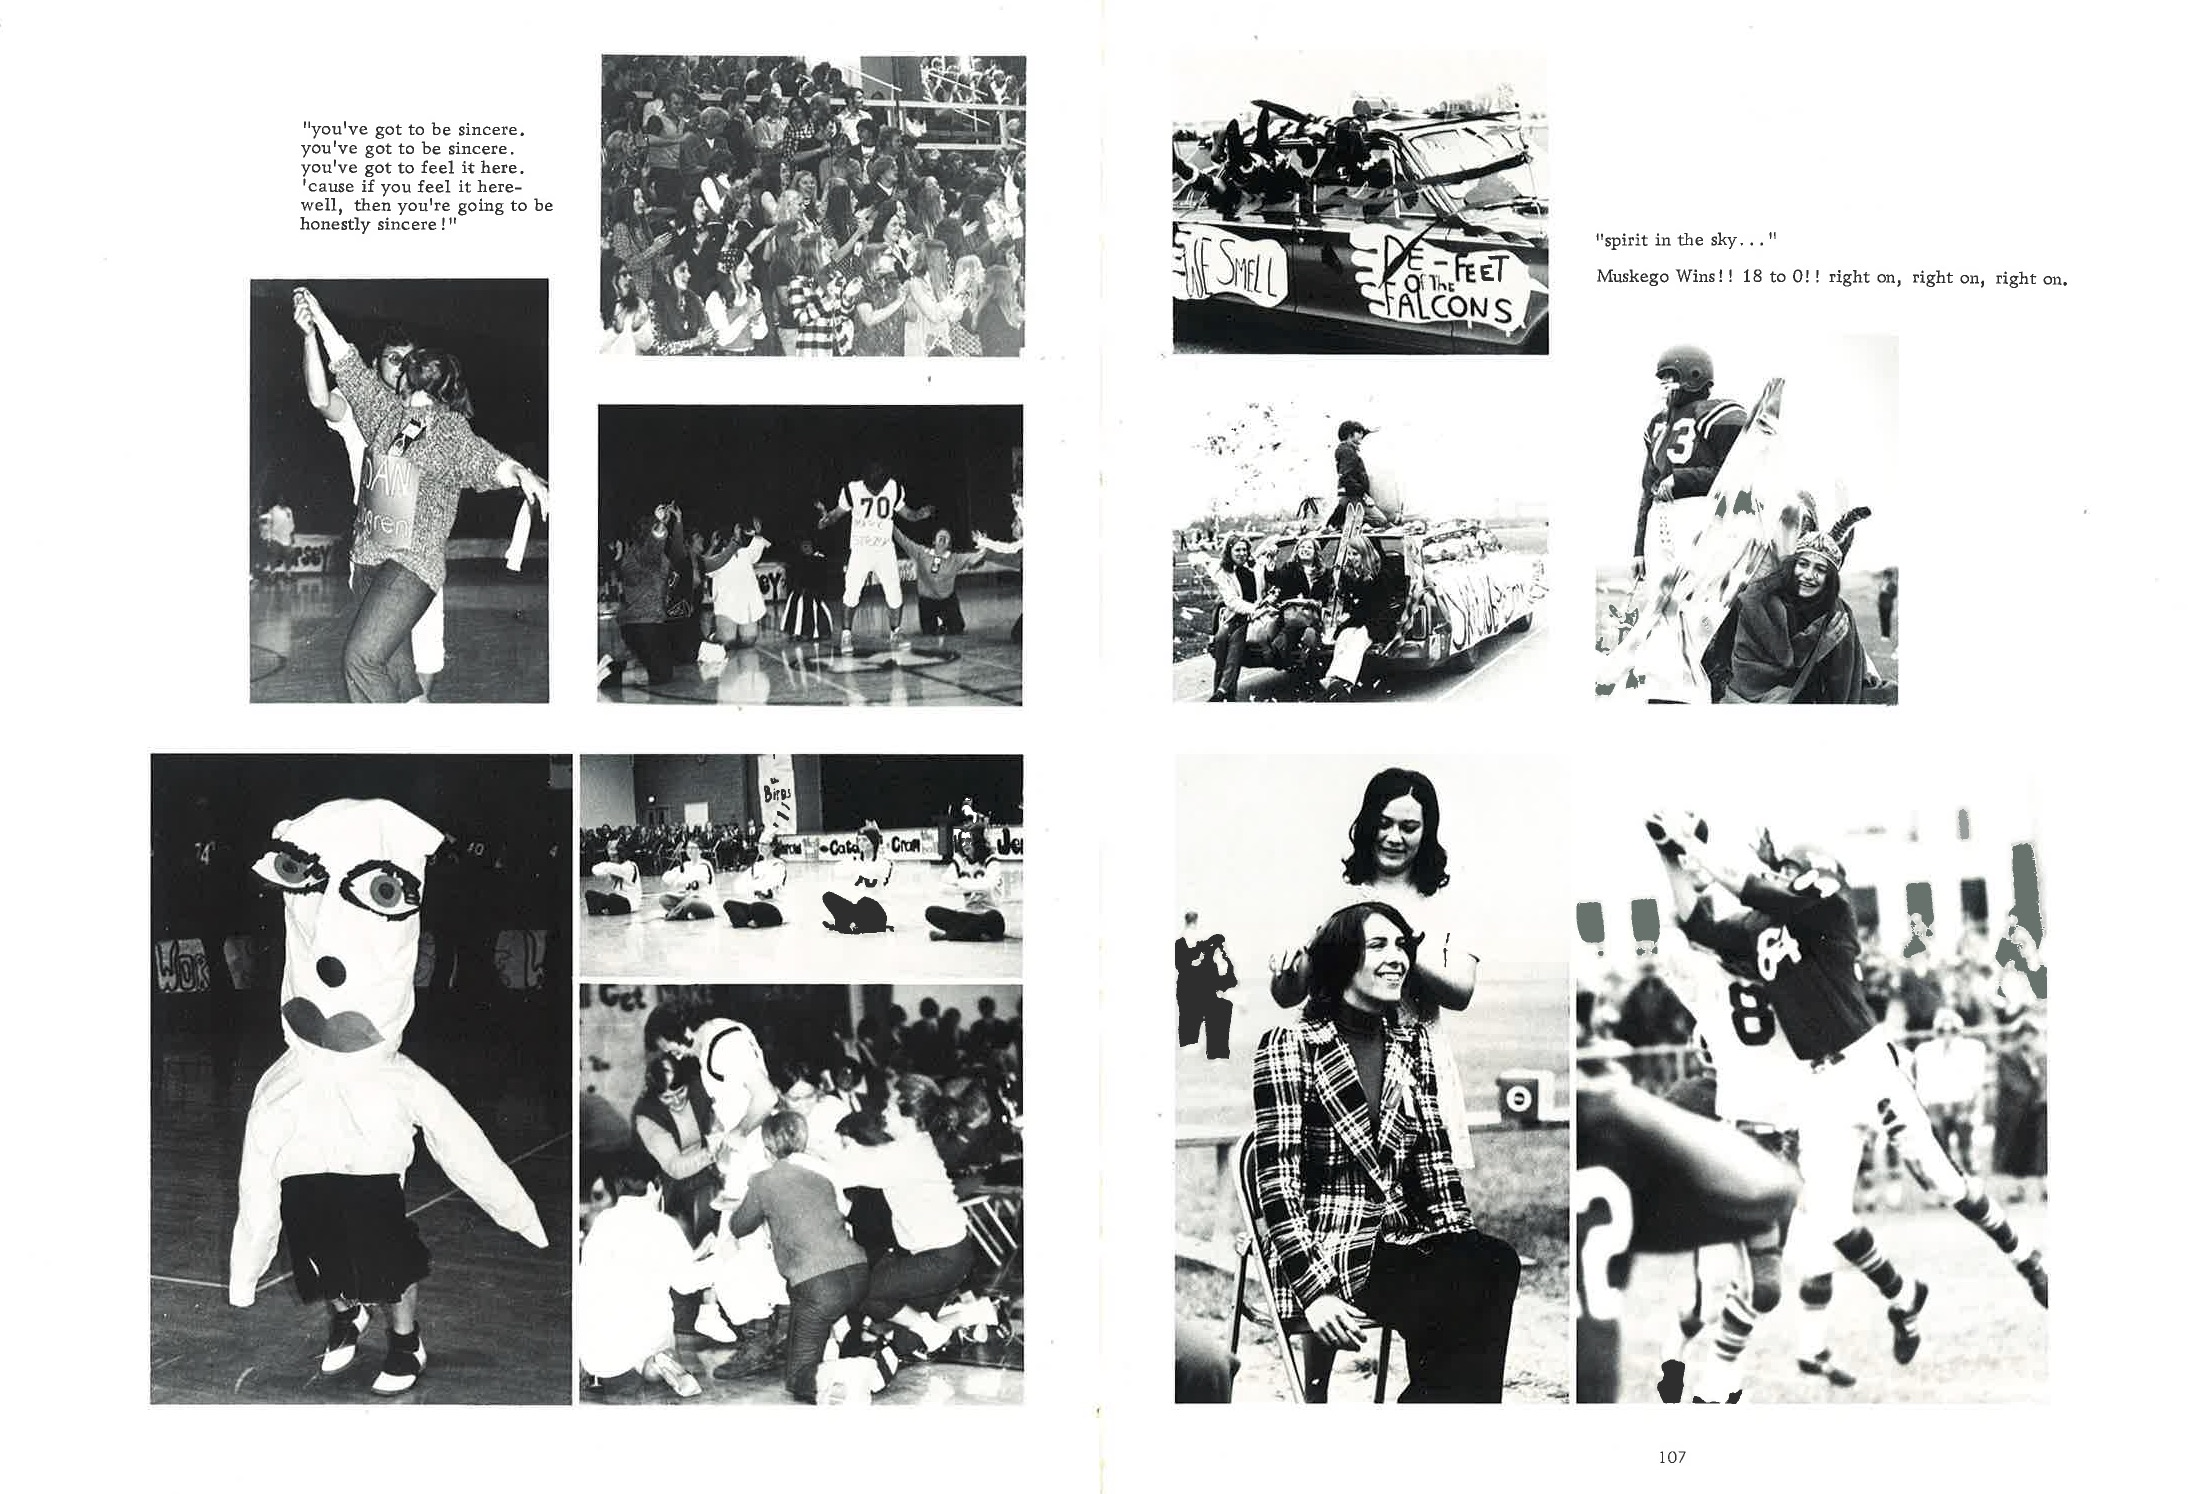 1973_Yearbook_106-107.jpg